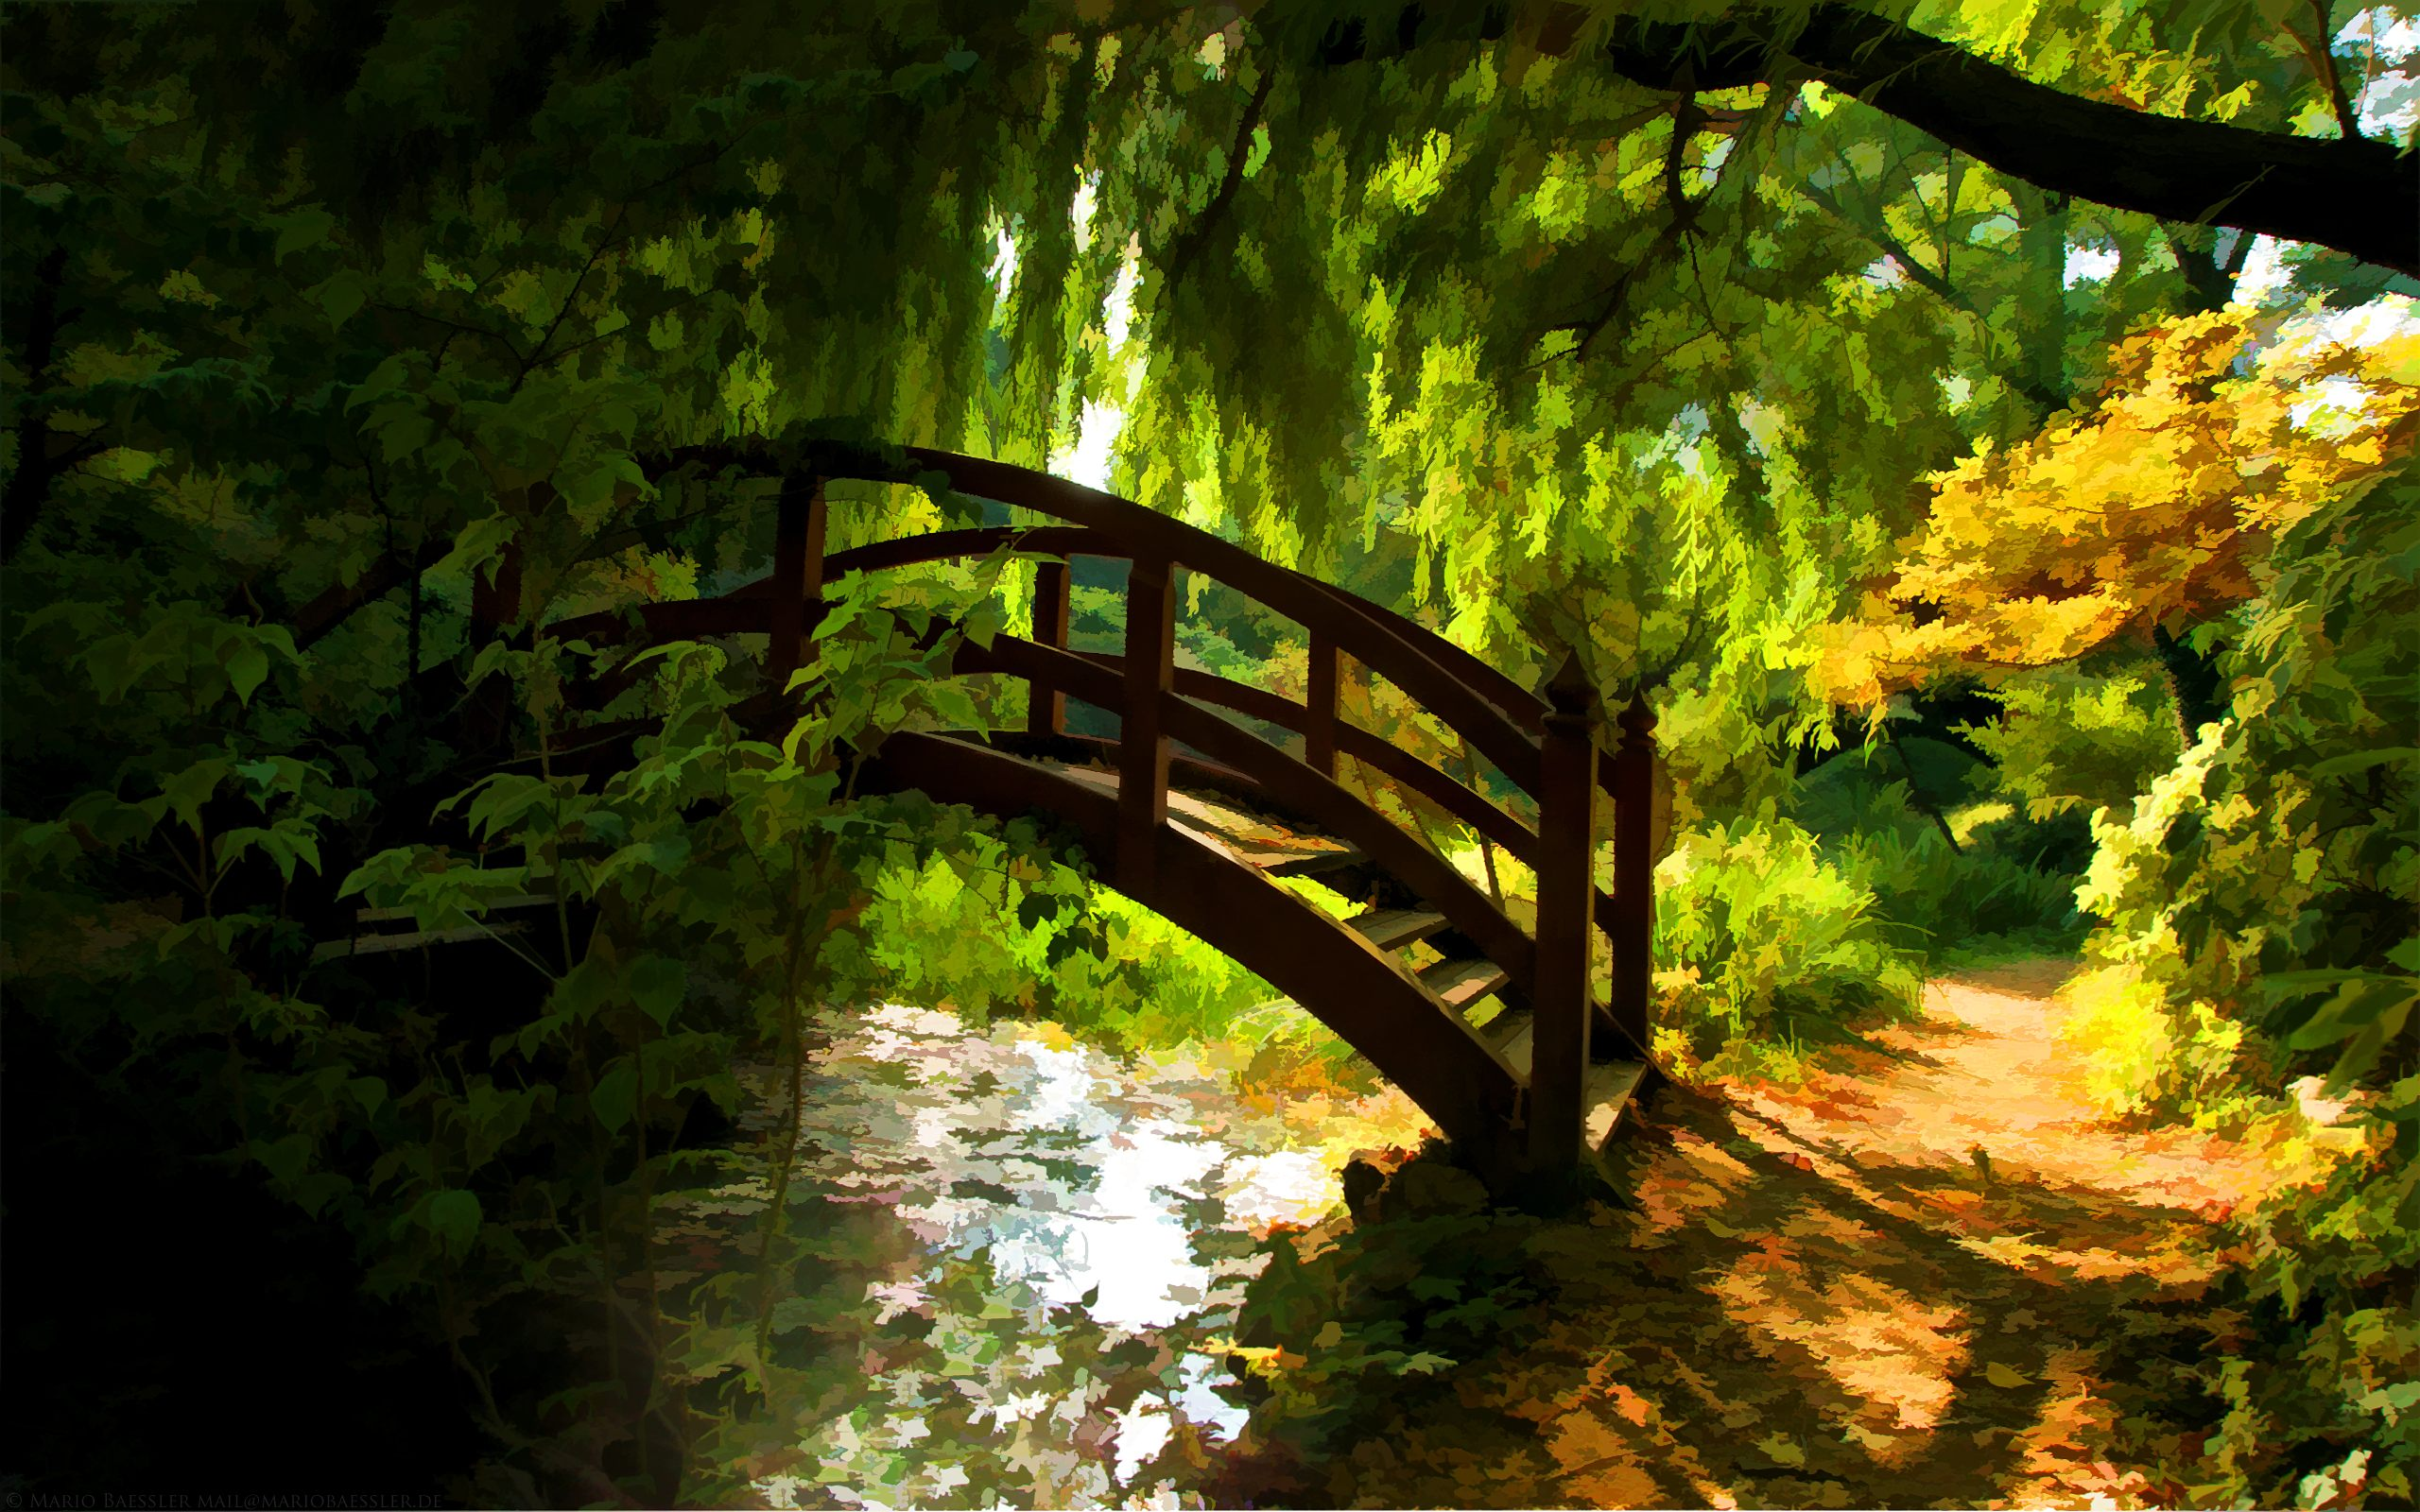 nature background images for photoshop free download